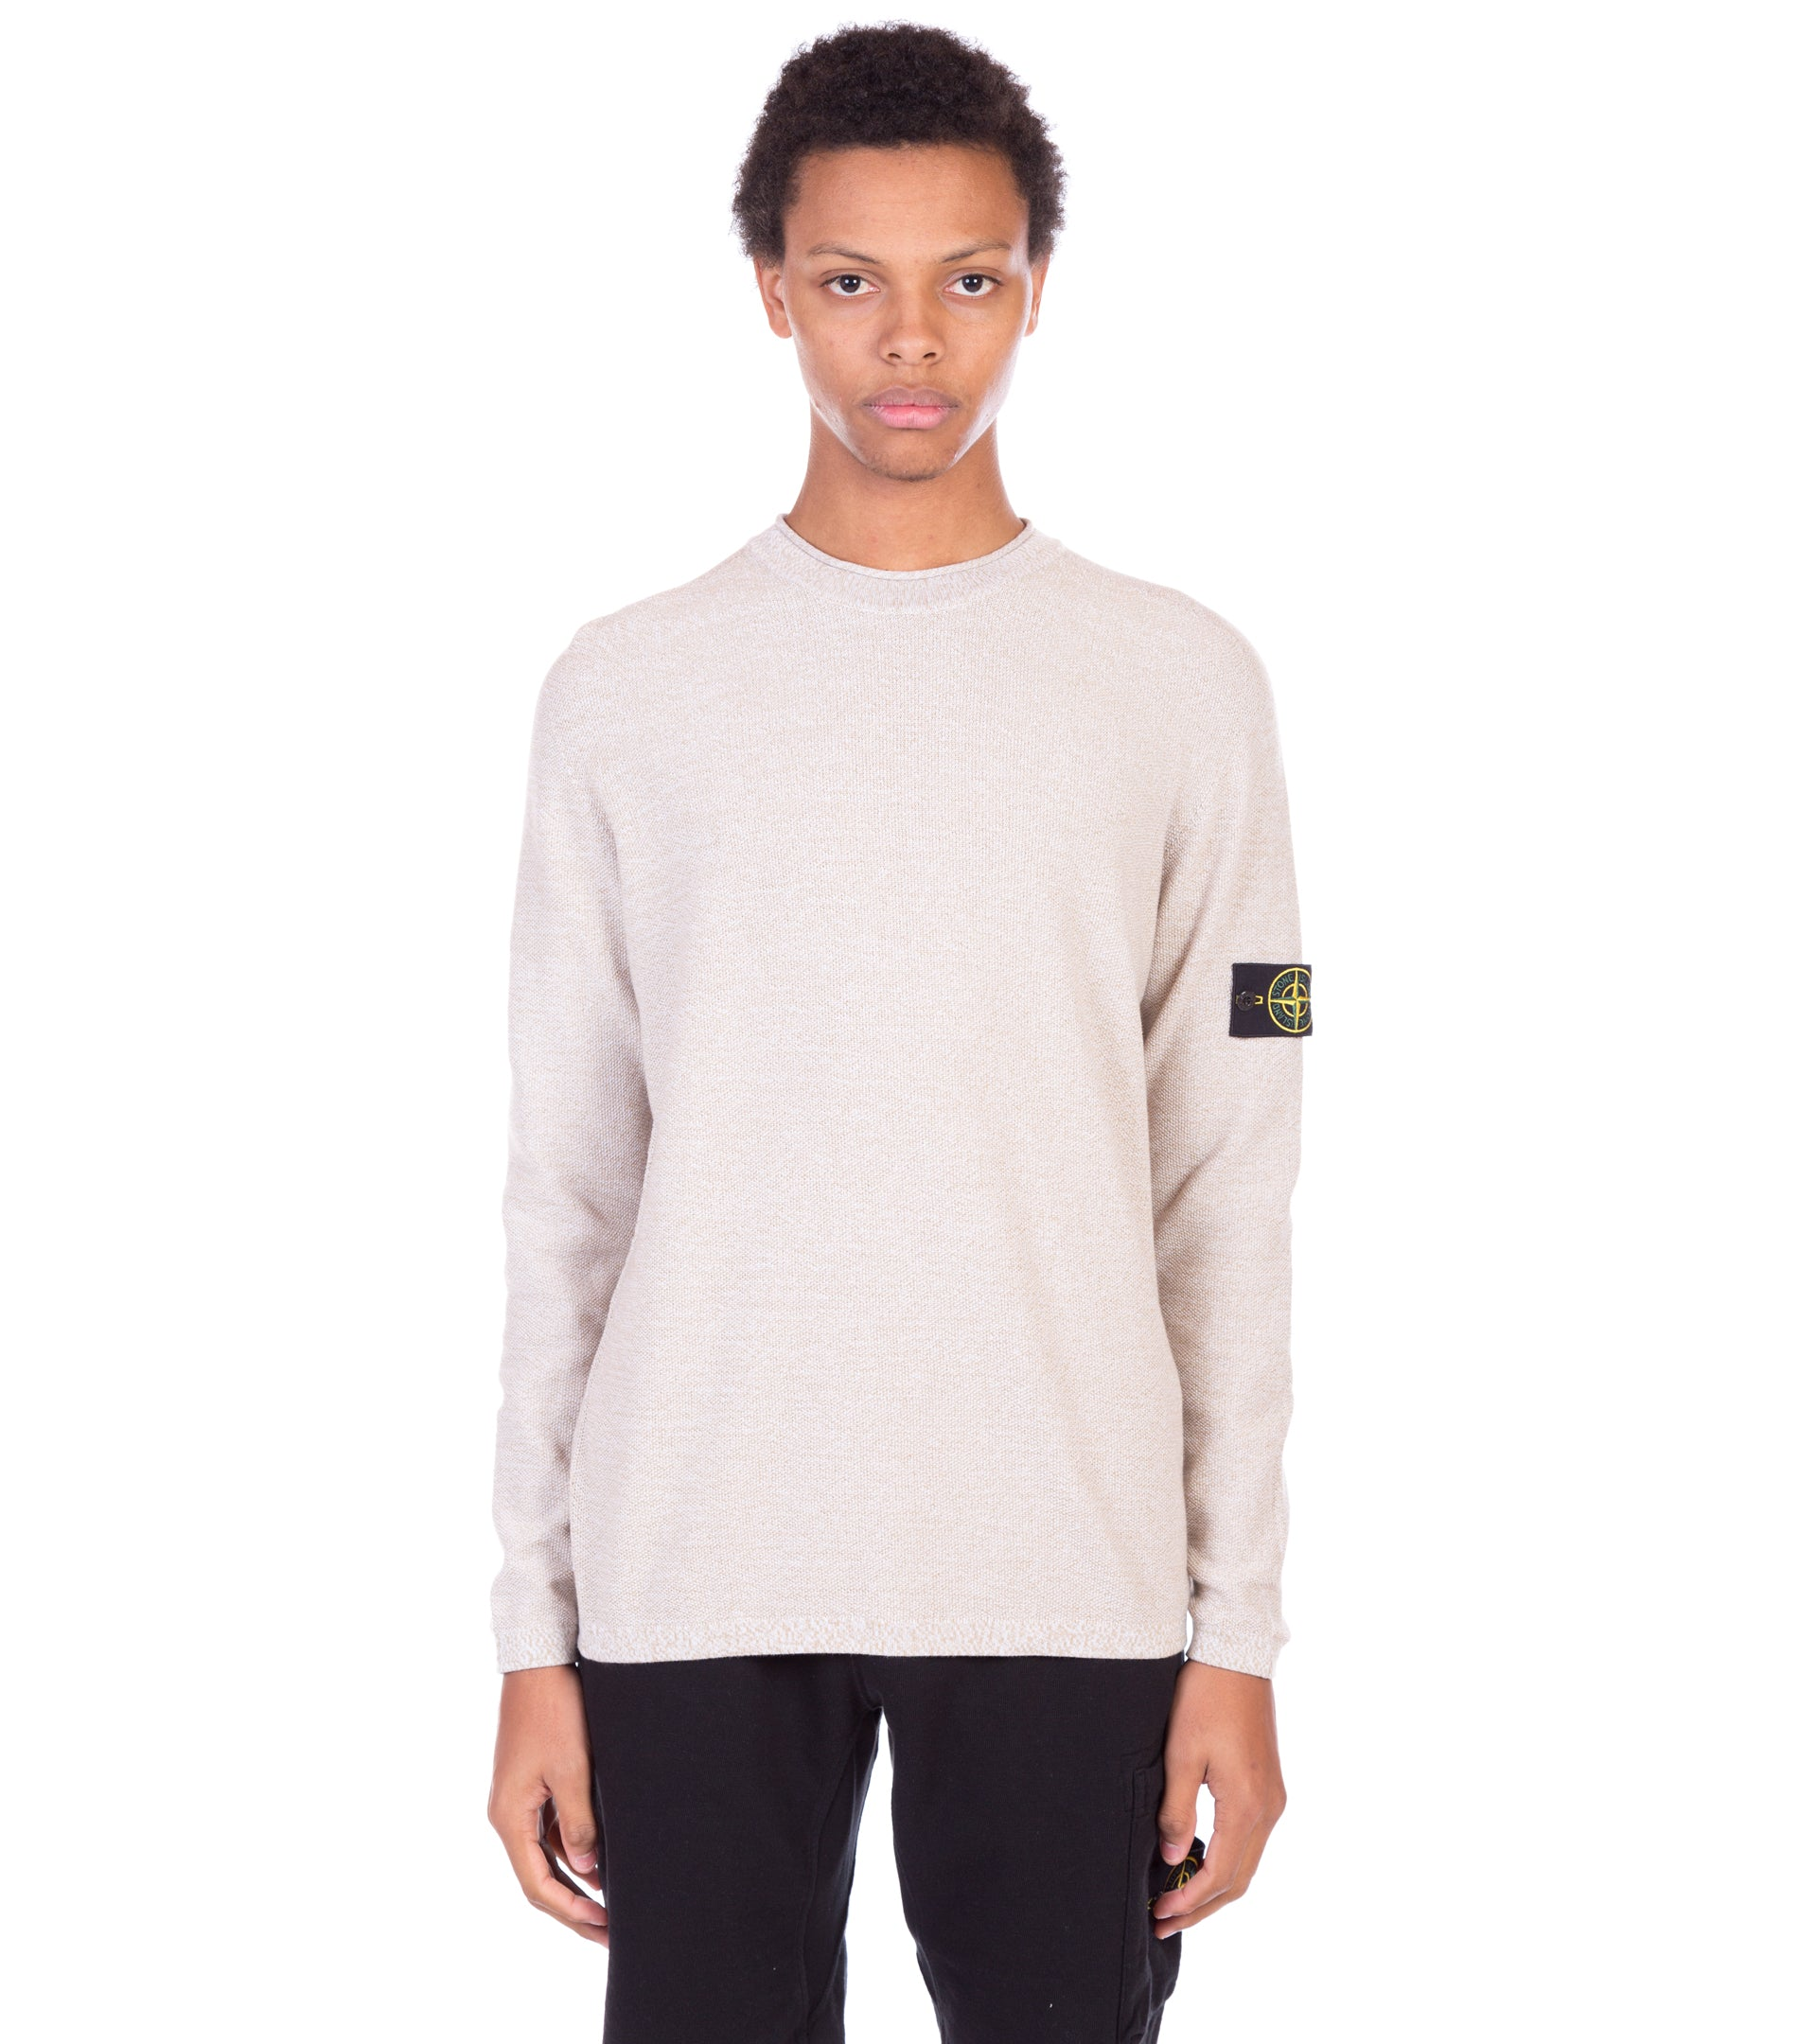 Micro Knit Sweater Common